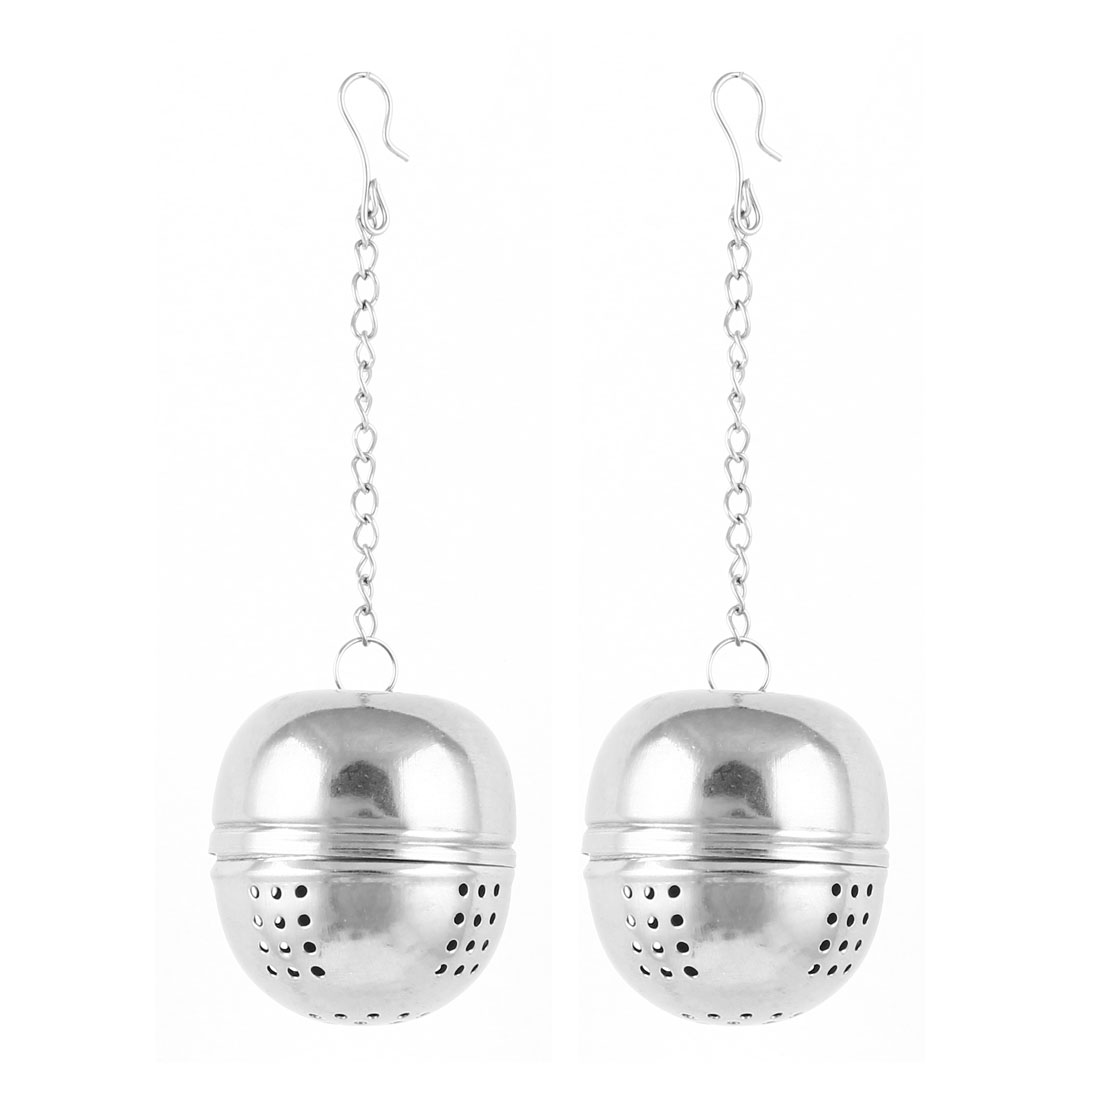 Kitchen 4cm Dia Ball Shaped Stainess Steel Tea Filter Infuser 2 Pcs